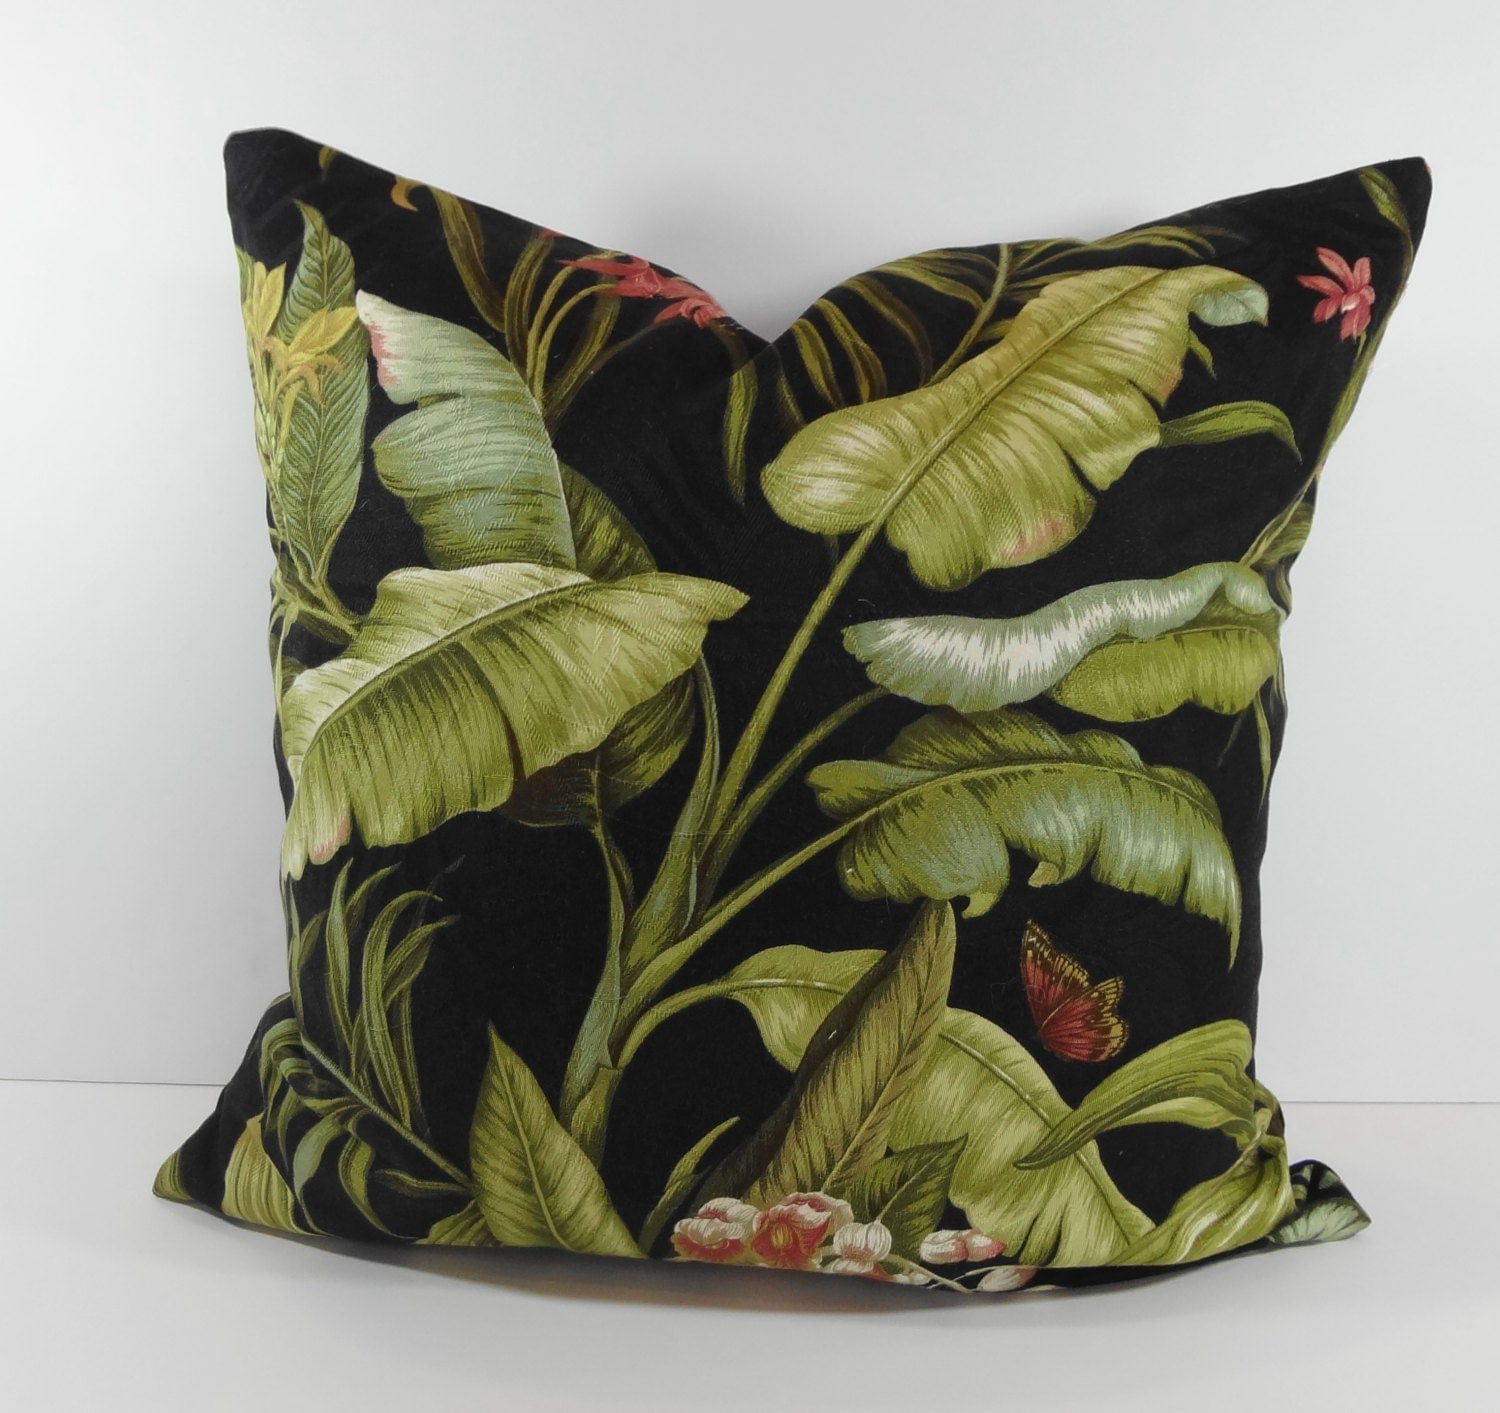 Tommy Bahama Designer Tropical Pillow Cover Decorative Throw